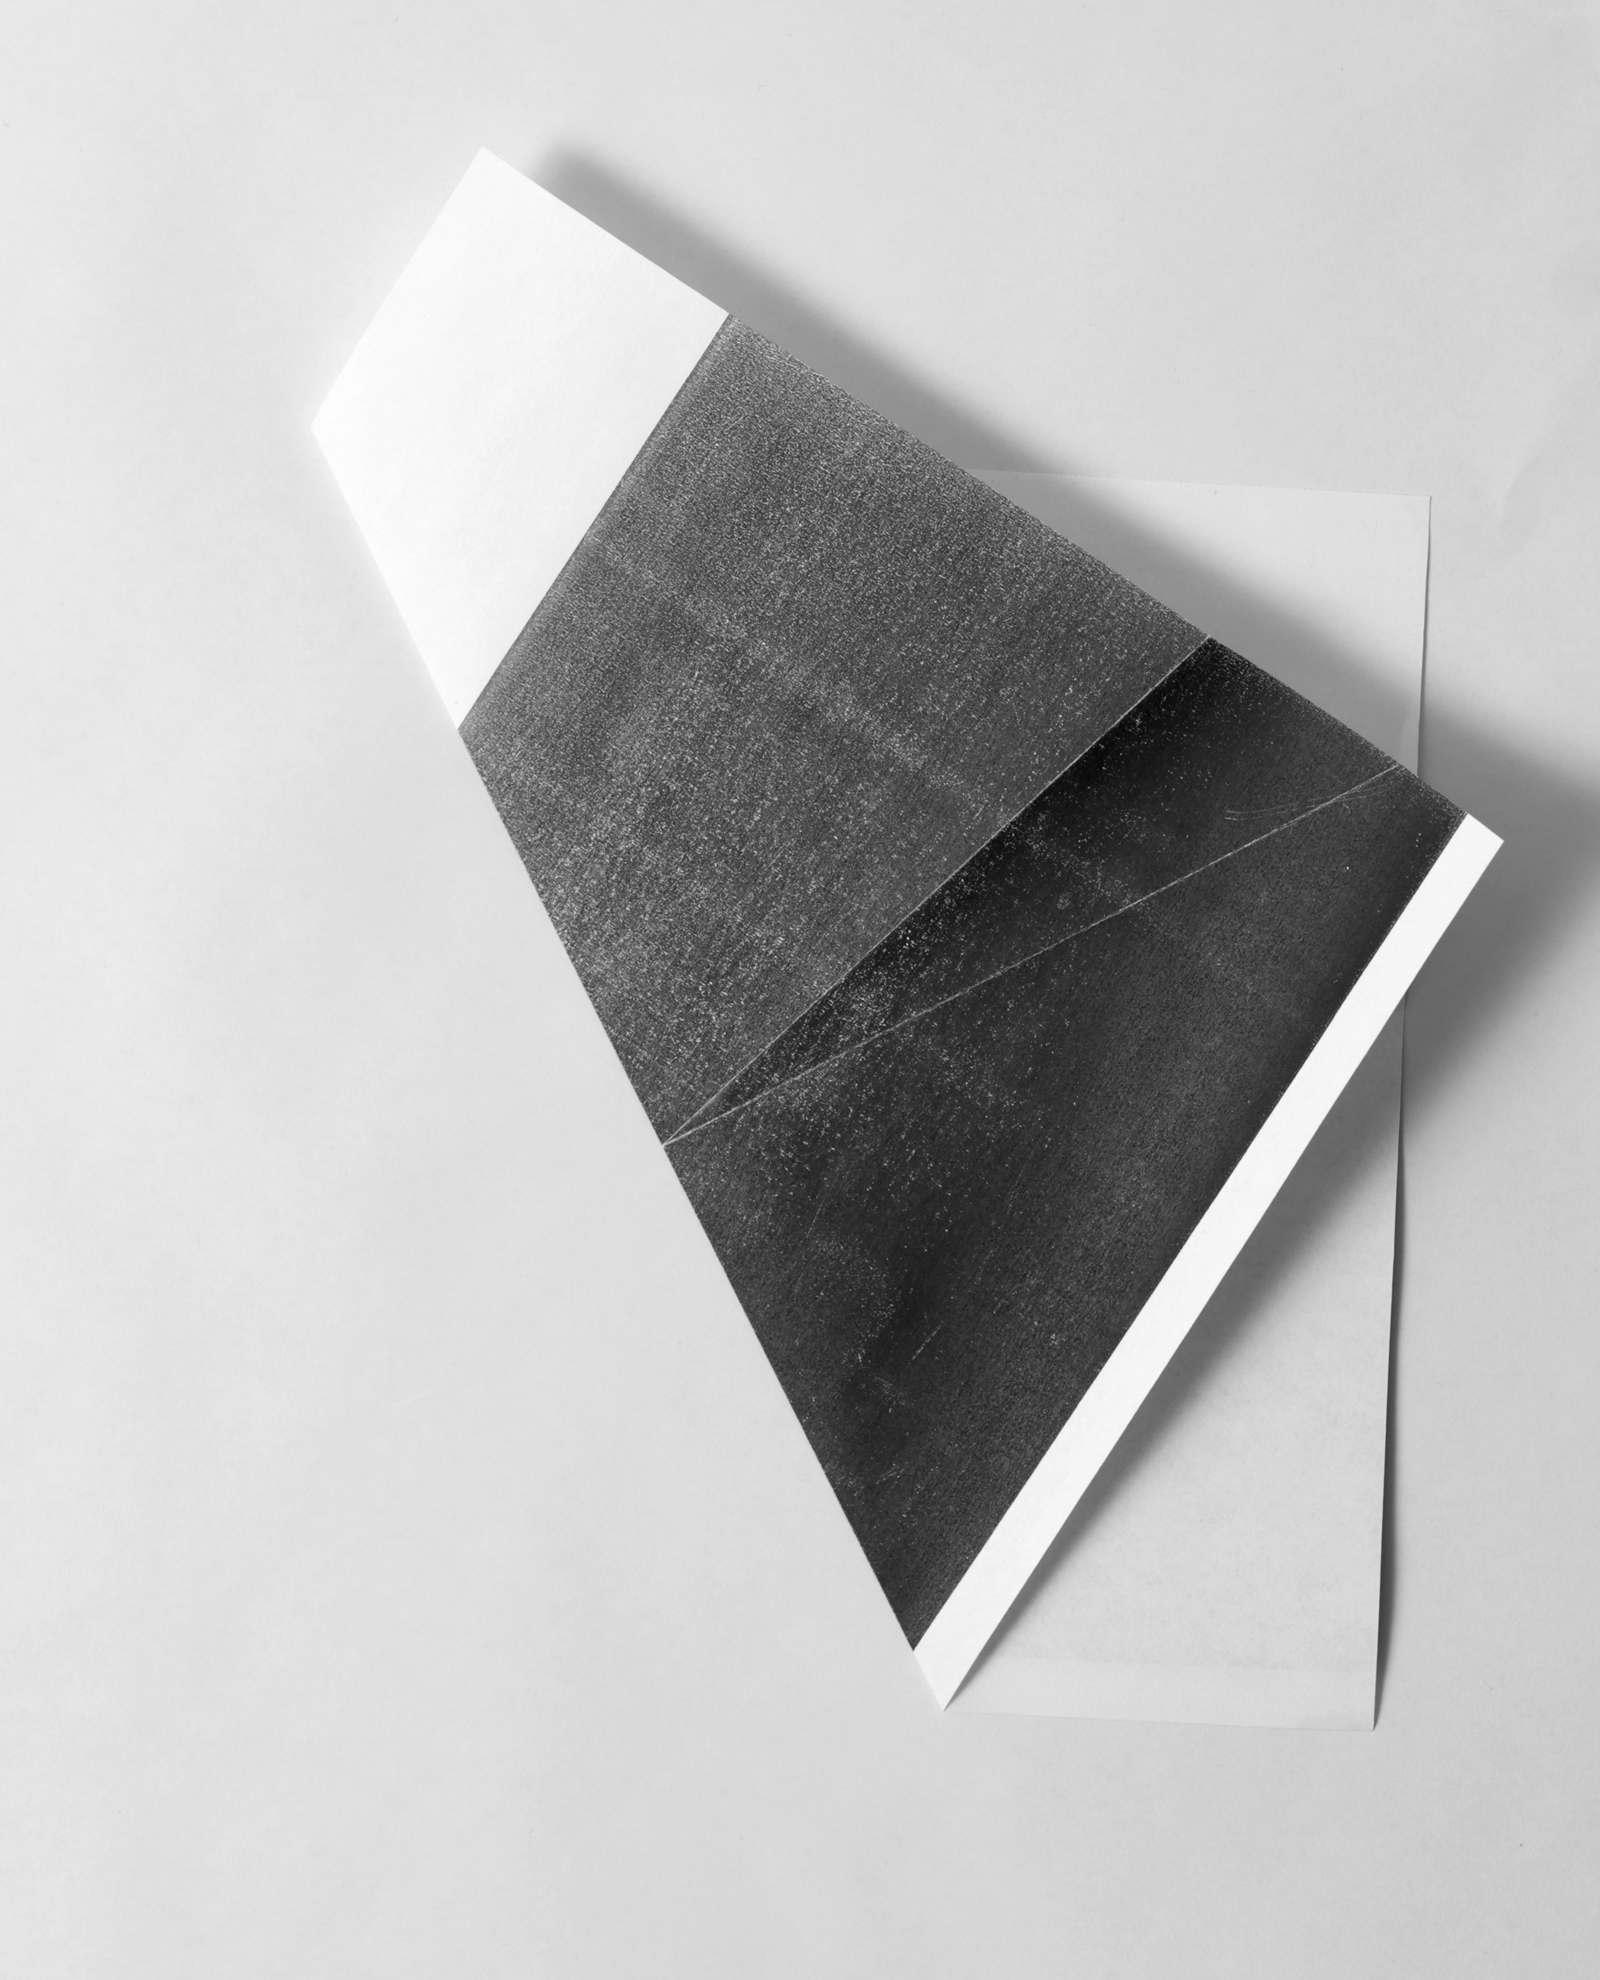 from the ongoing series: O/, Divided/Defined, Weights, Measures, and Emotional Geometry  2013, Folded photocopy. 8 x 10 inches folded